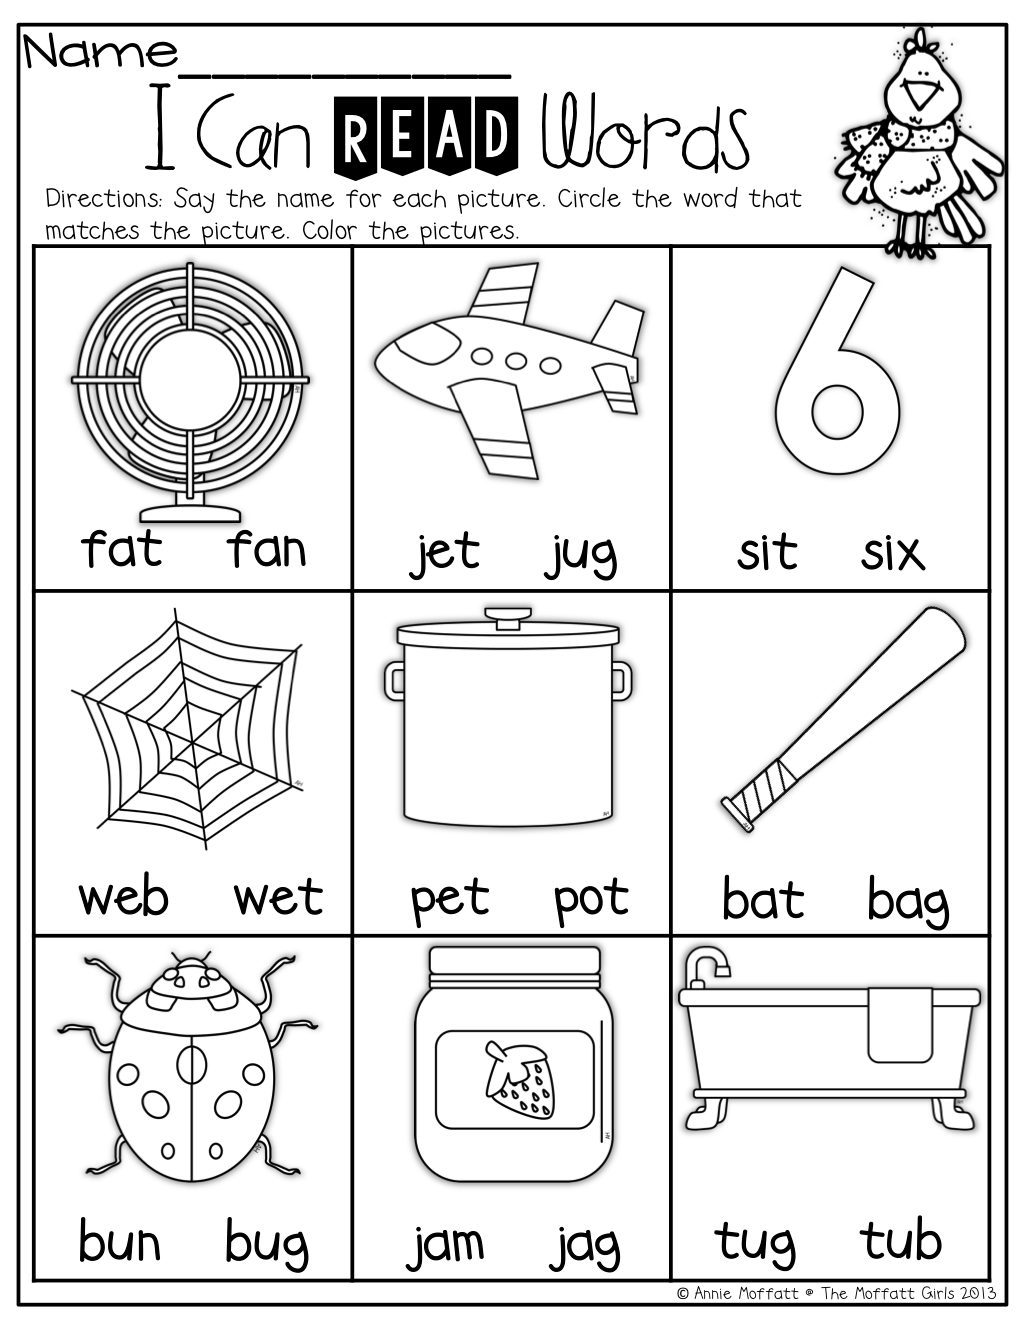 Workbooks homeschooling worksheets for kindergarten : I Can Read Words! | Kinder | Pinterest | Kindergarten, Literacy ...